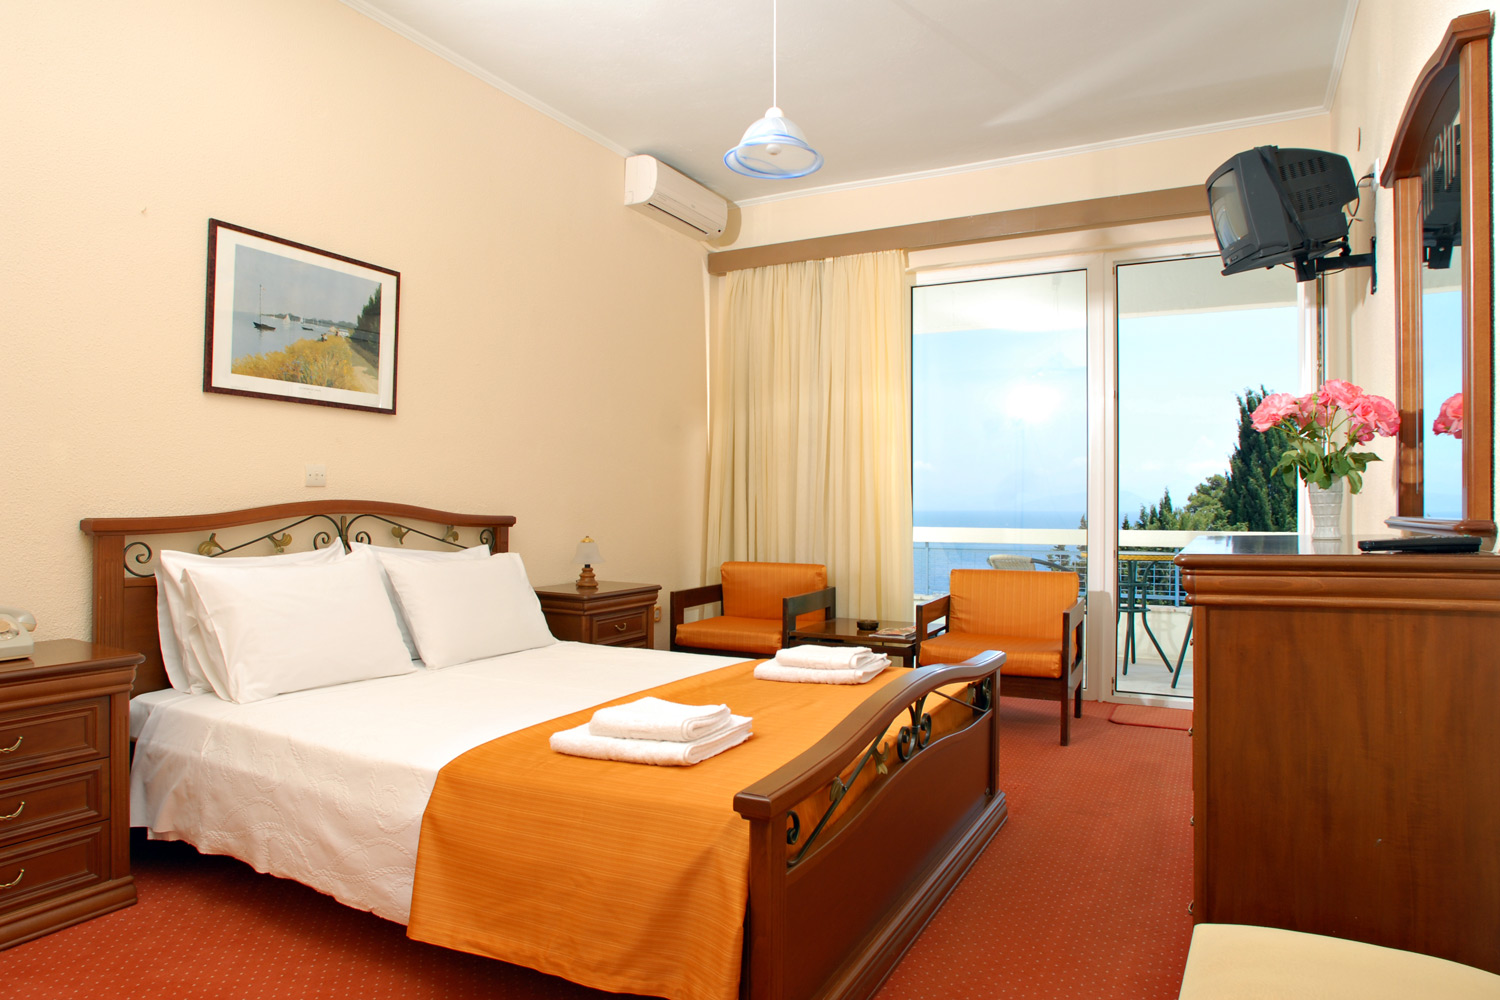 kerkira single personals It consists of three bedrooms (one with a double bed, one with three beds and one with a single bed), and a shared bathroom on the ground floor, .